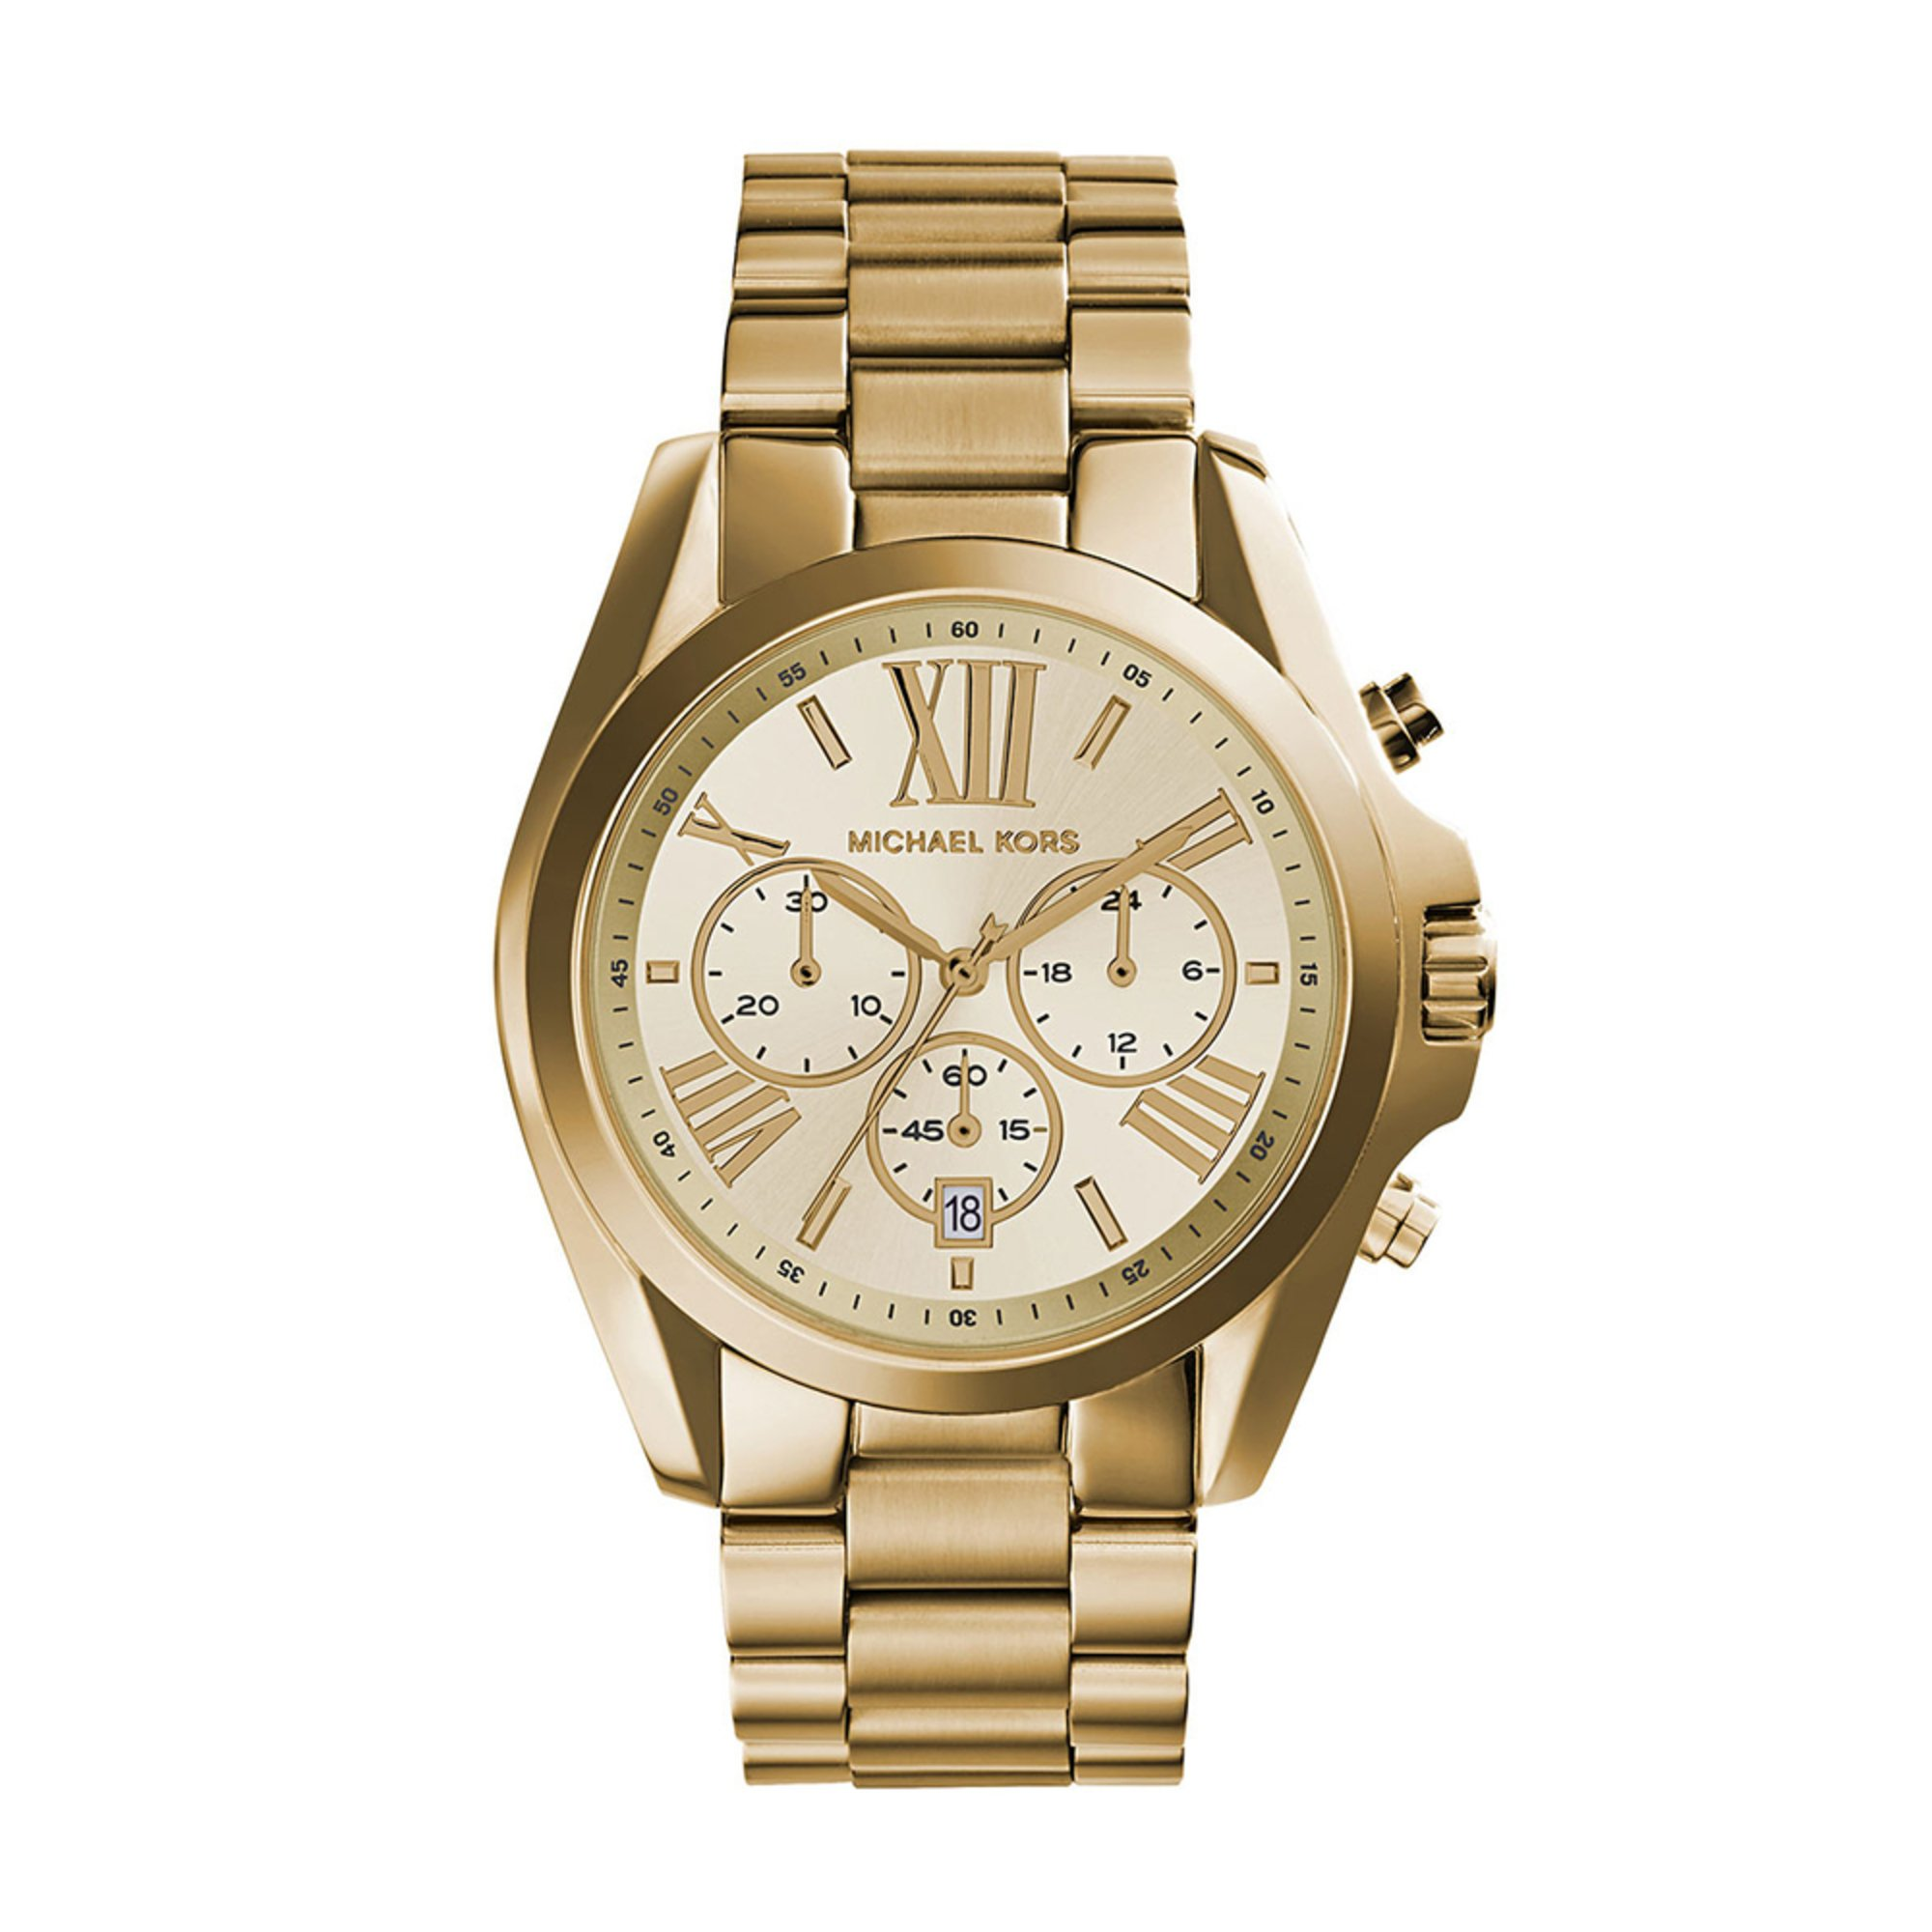 michael kors unisex bradshaw gold tone chronograph watch. Black Bedroom Furniture Sets. Home Design Ideas